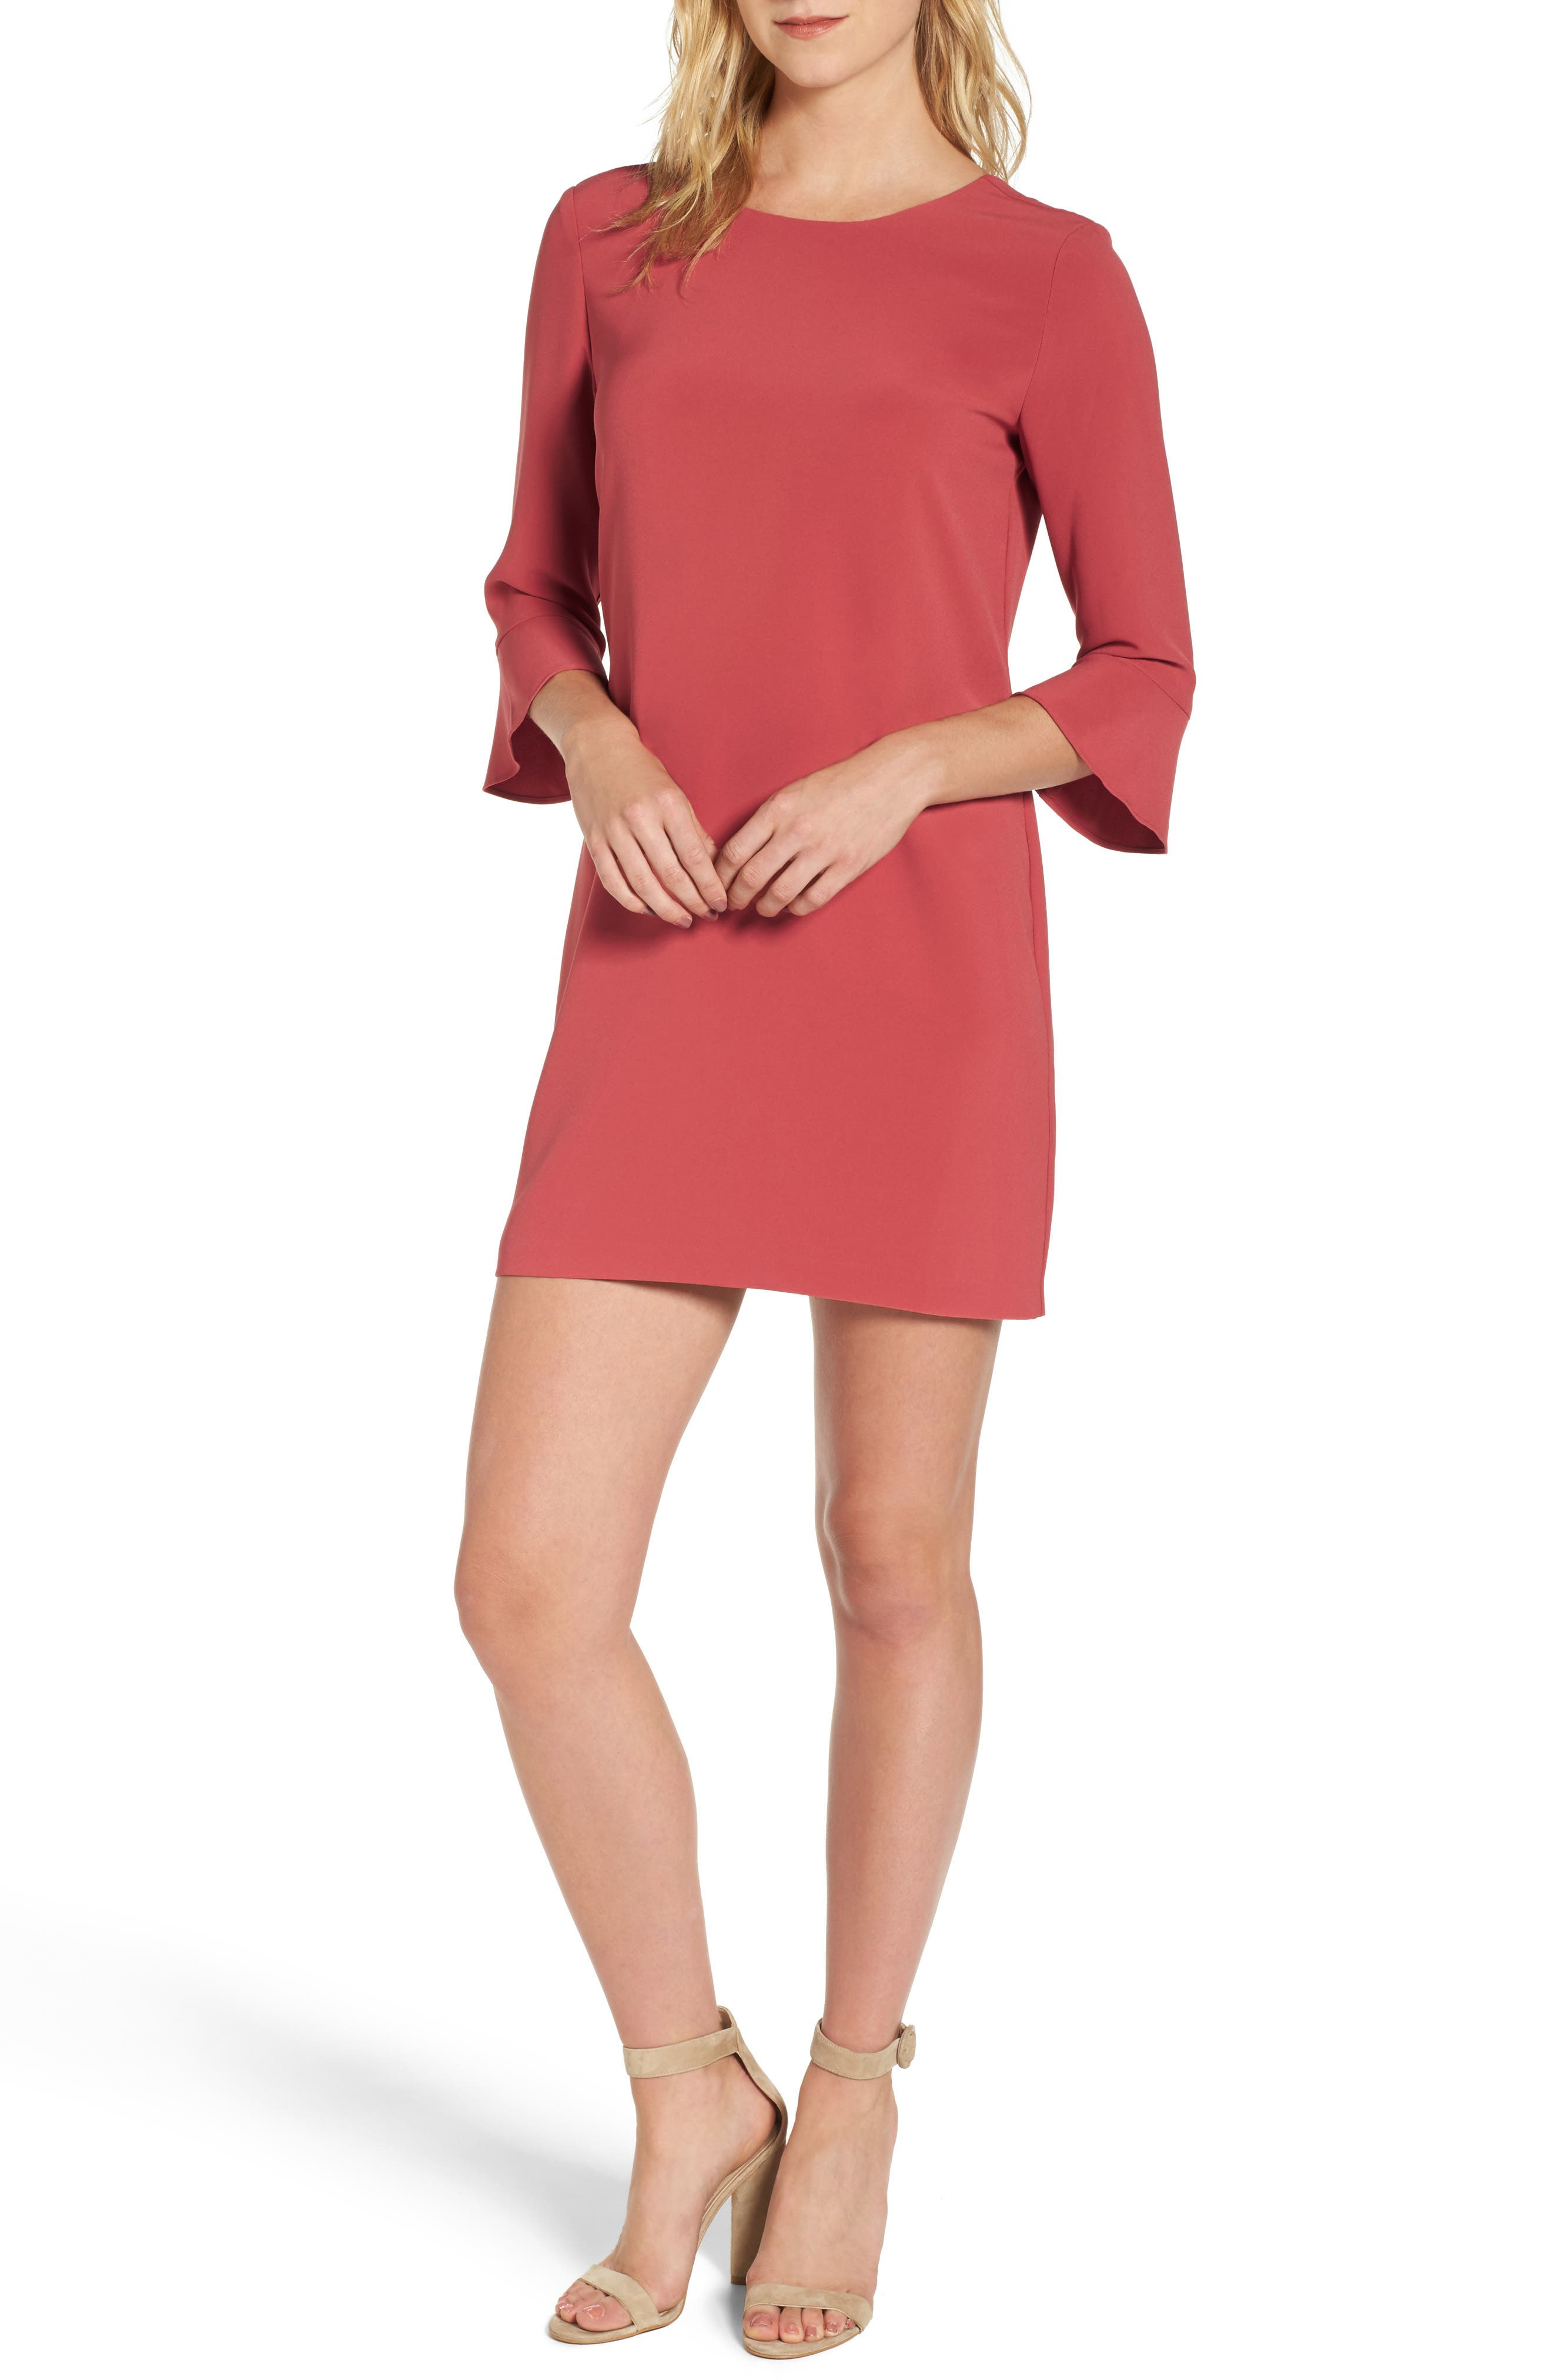 cooper & ella Matilda Shift Dress